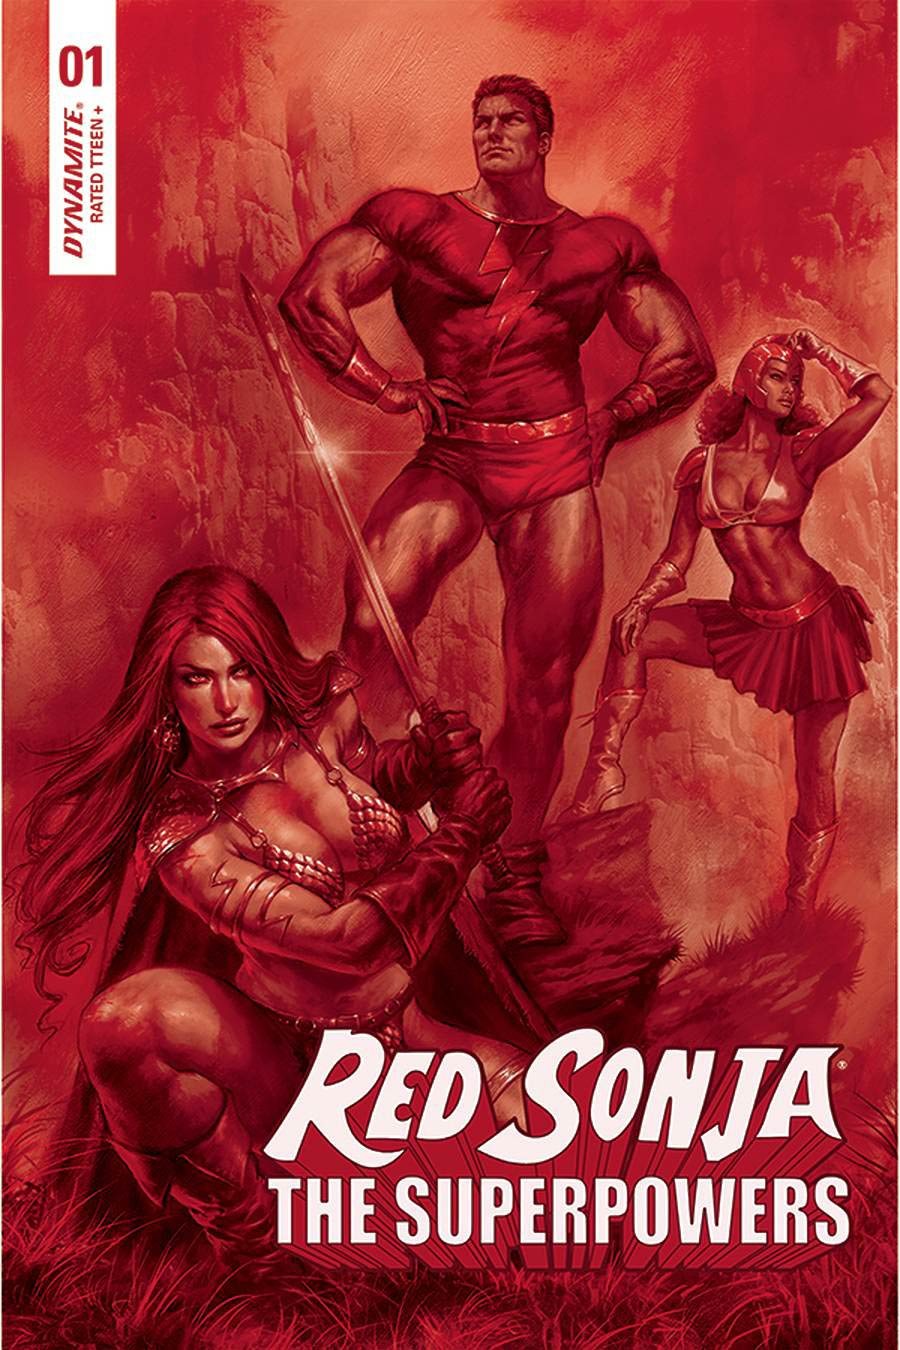 Red Sonja The Superpowers #1 Cover Z-B Ultra-Premium Limited Edition Lucio Parrillo Crimson Red Line Art Cover